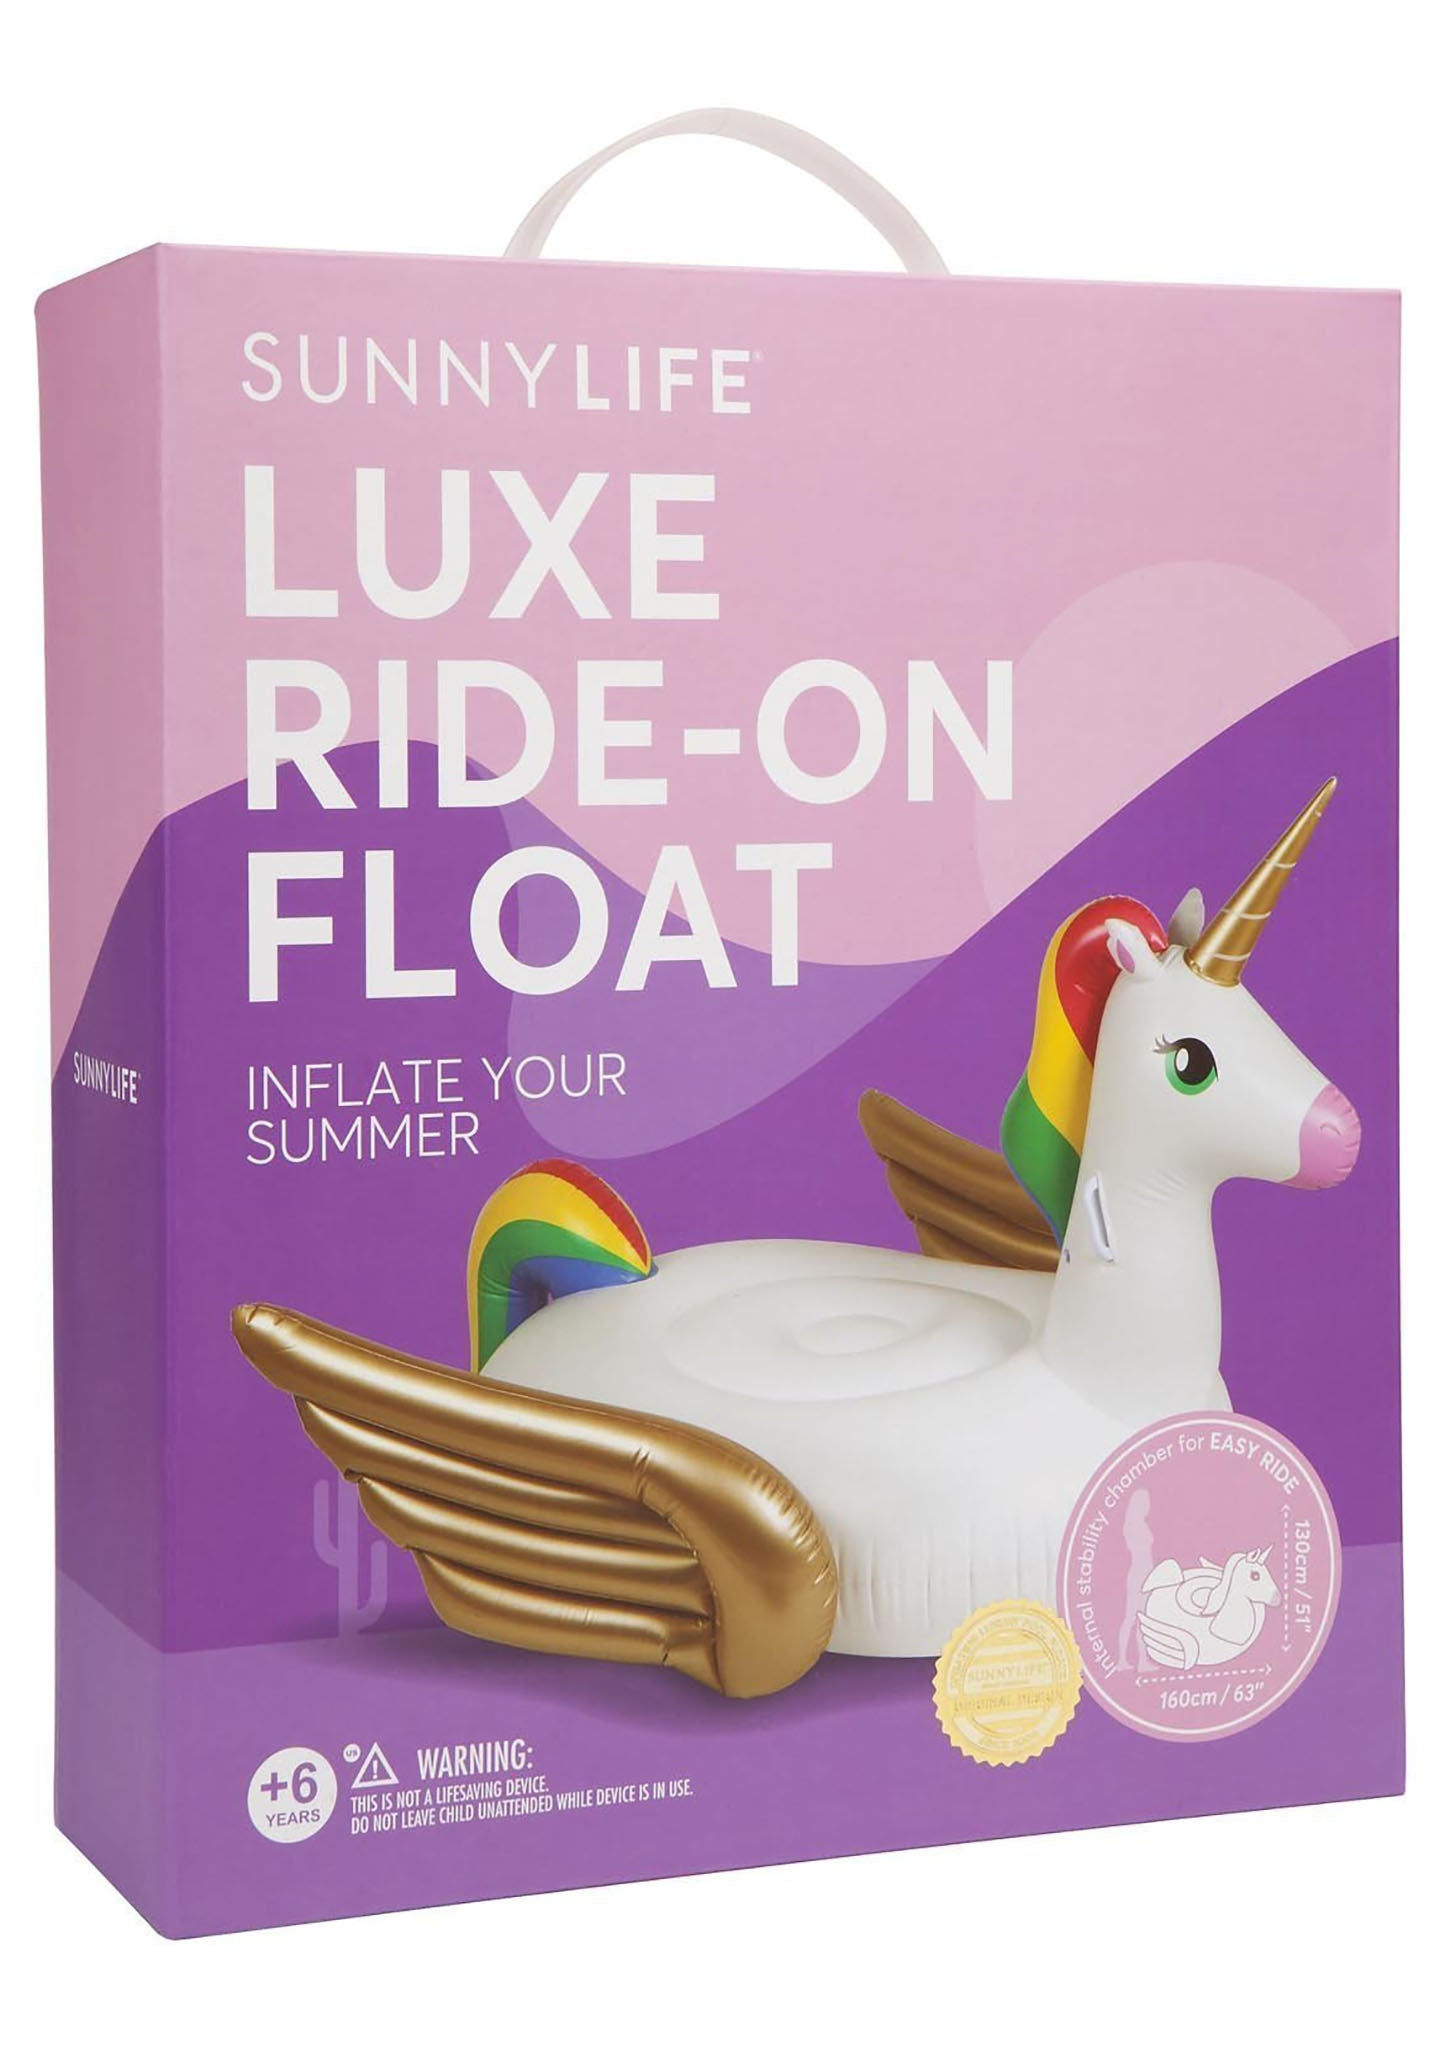 Sunnylife Luxe Ride-On Unicorn Float